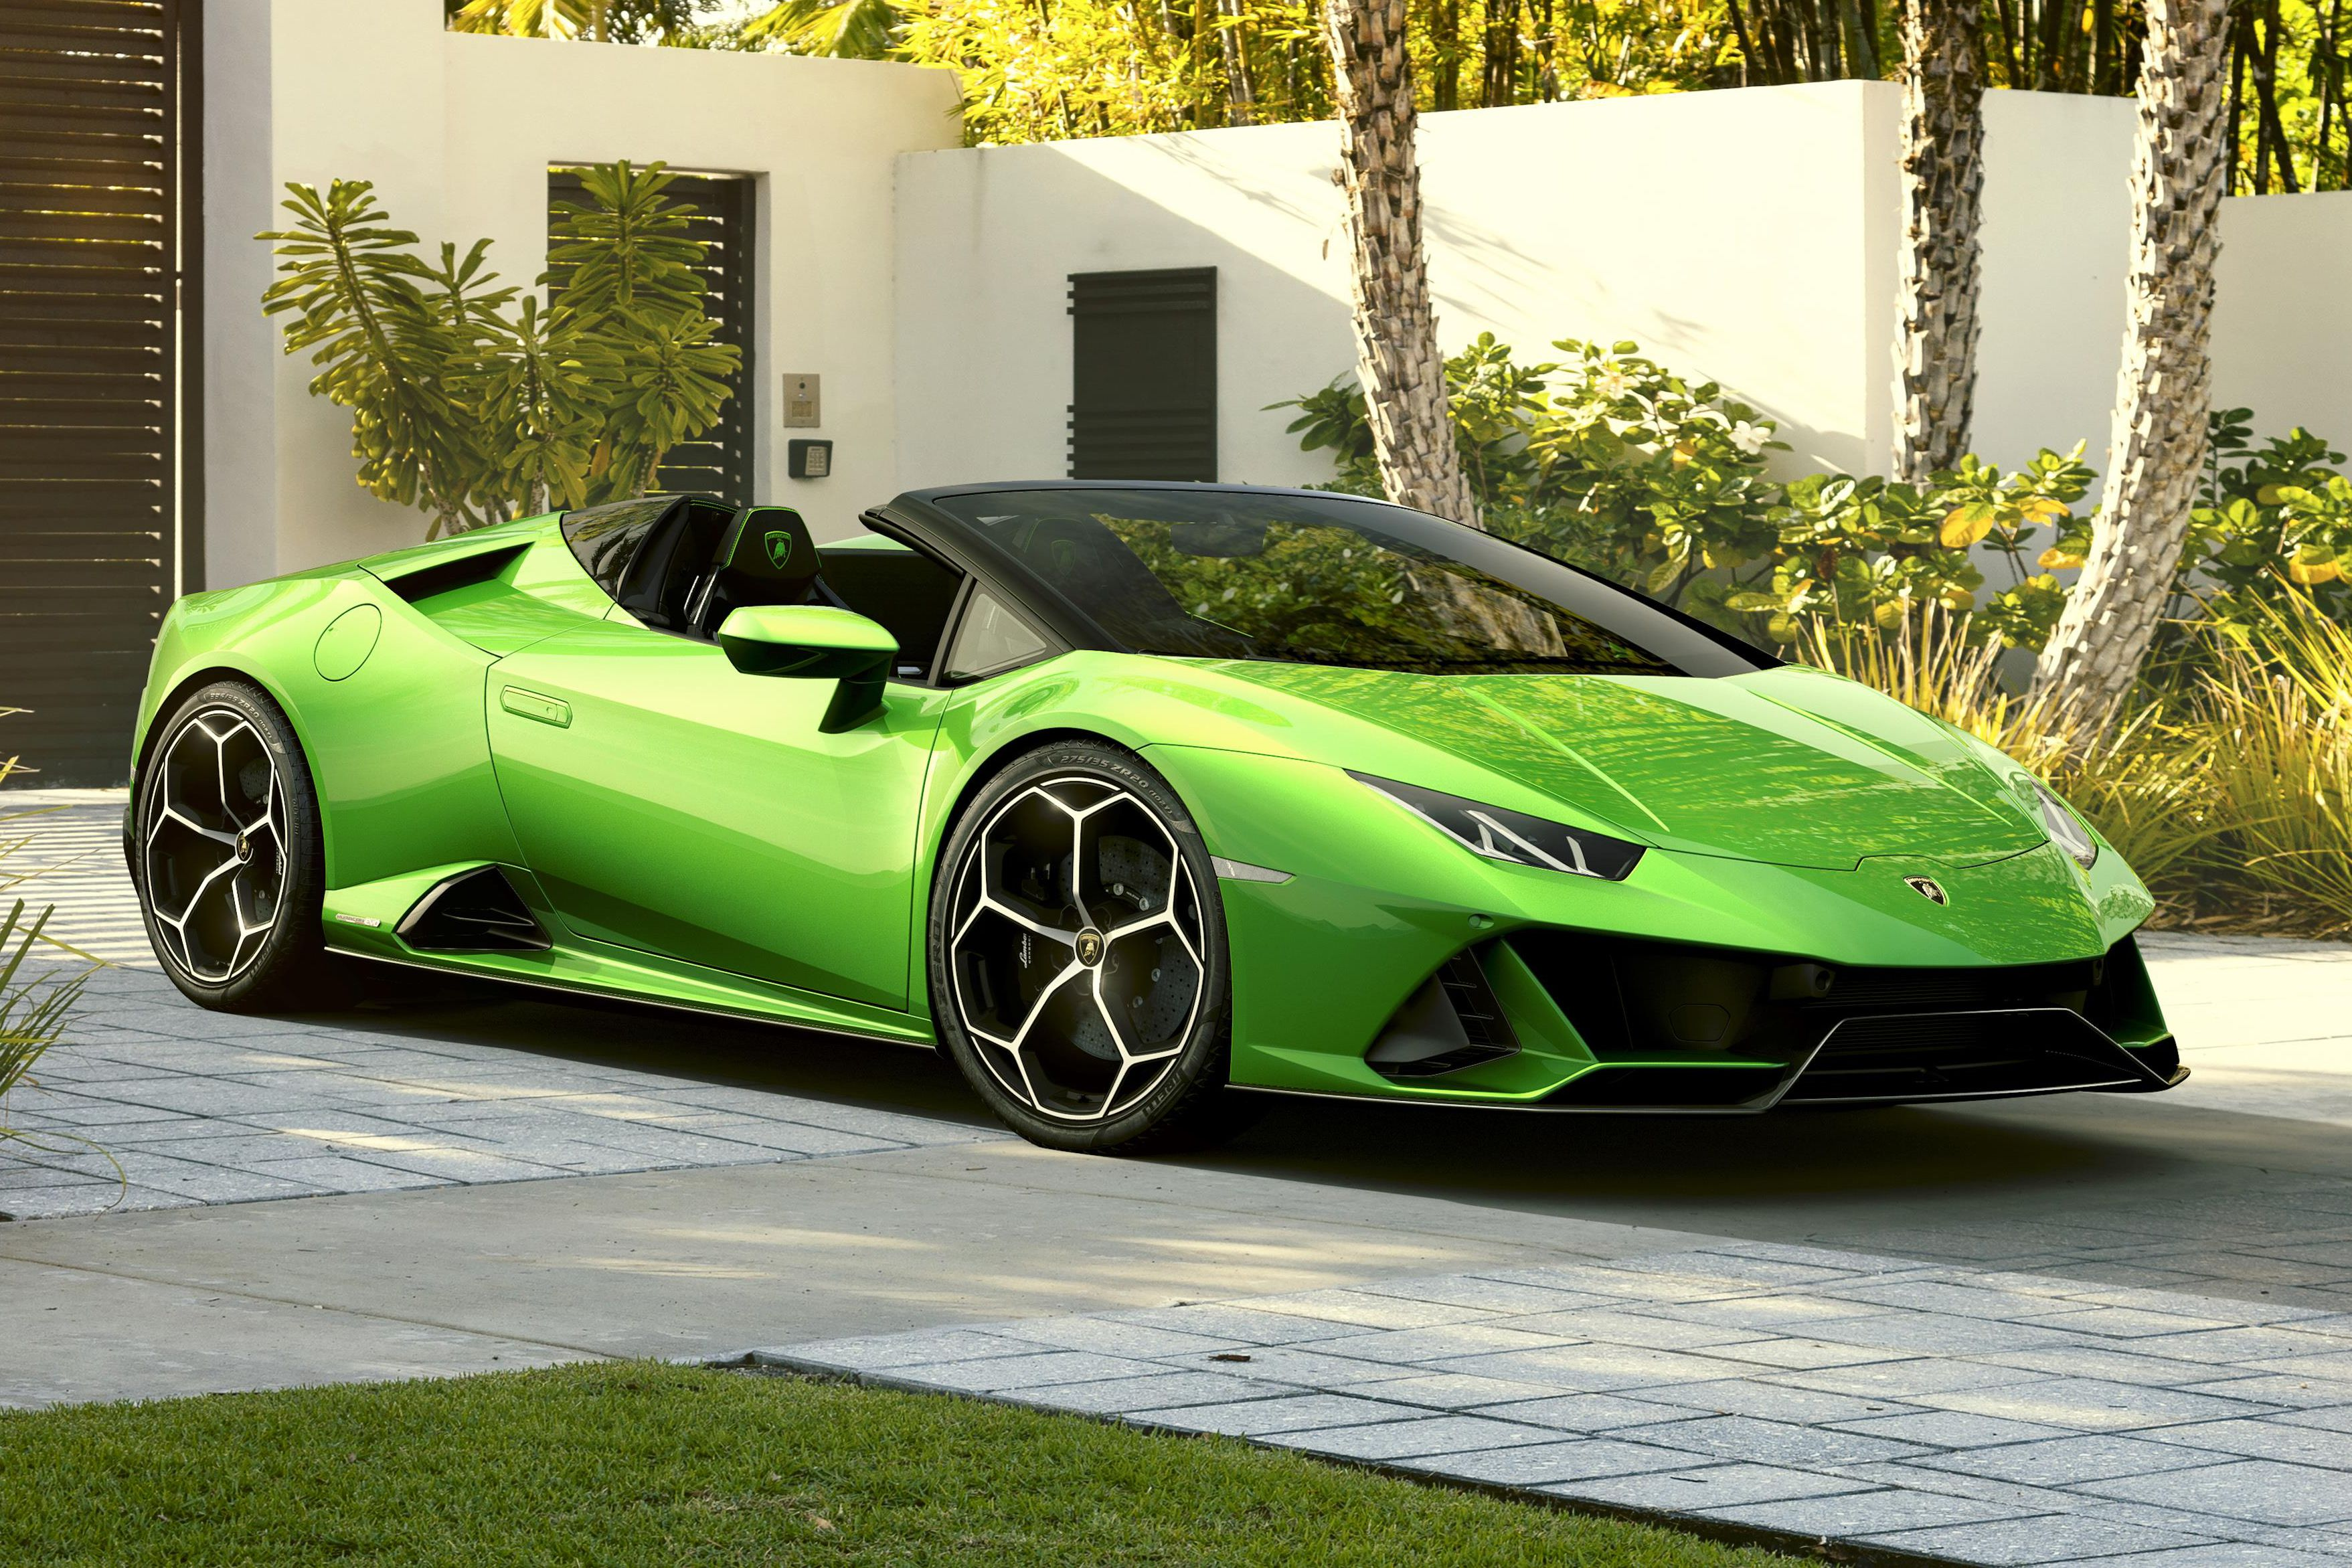 2021 Lamborghini Huracán Review Pricing And Specs